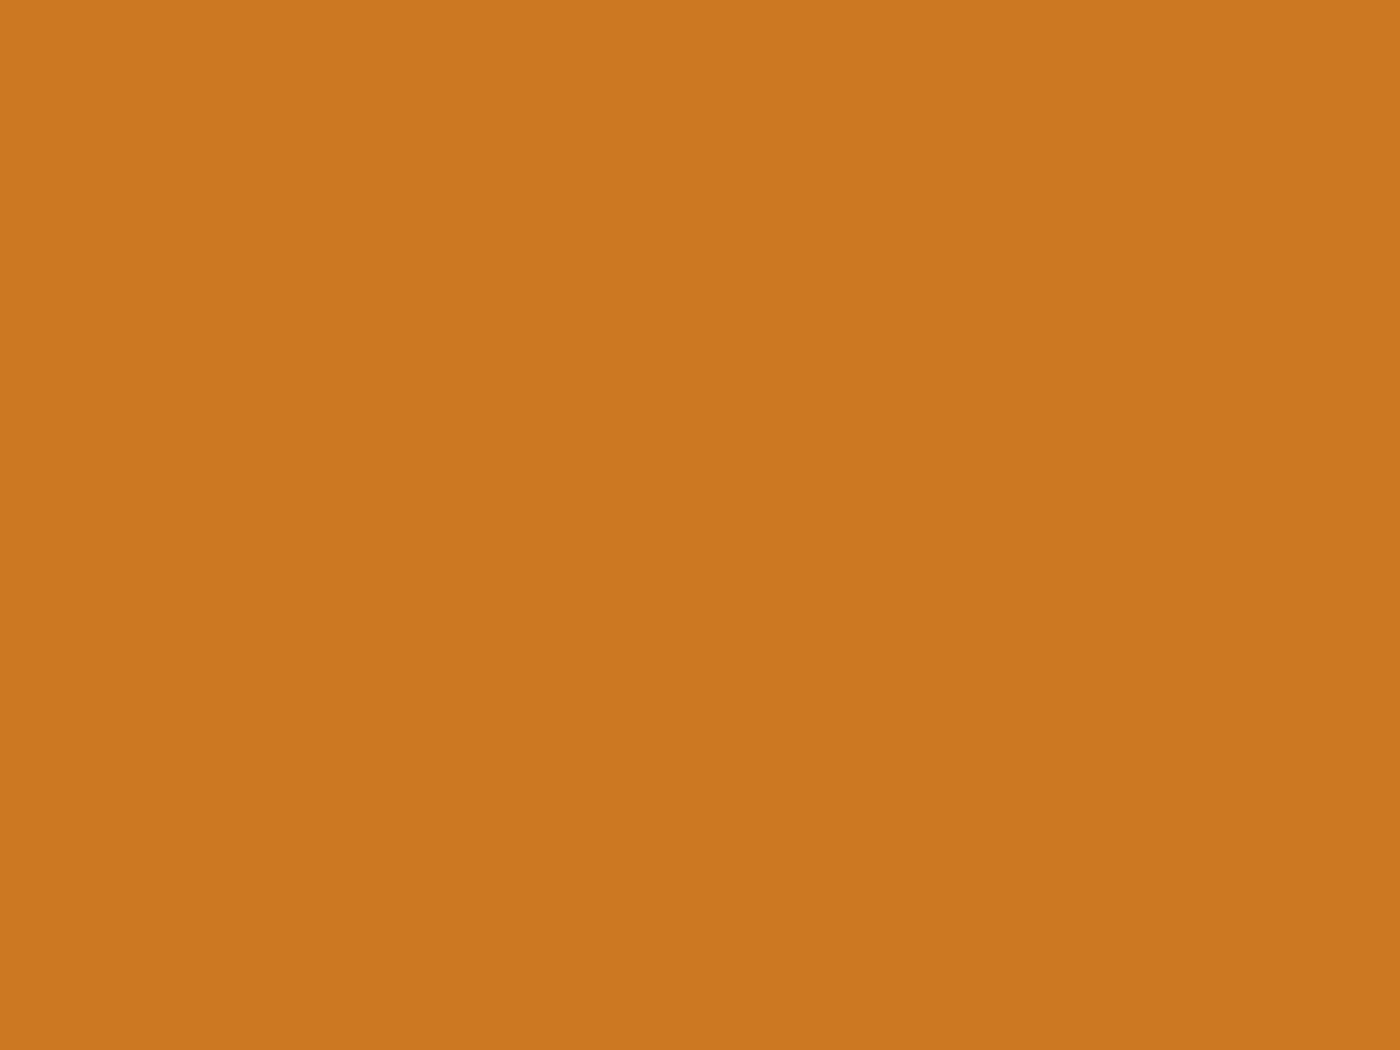 1400x1050 Ochre Solid Color Background